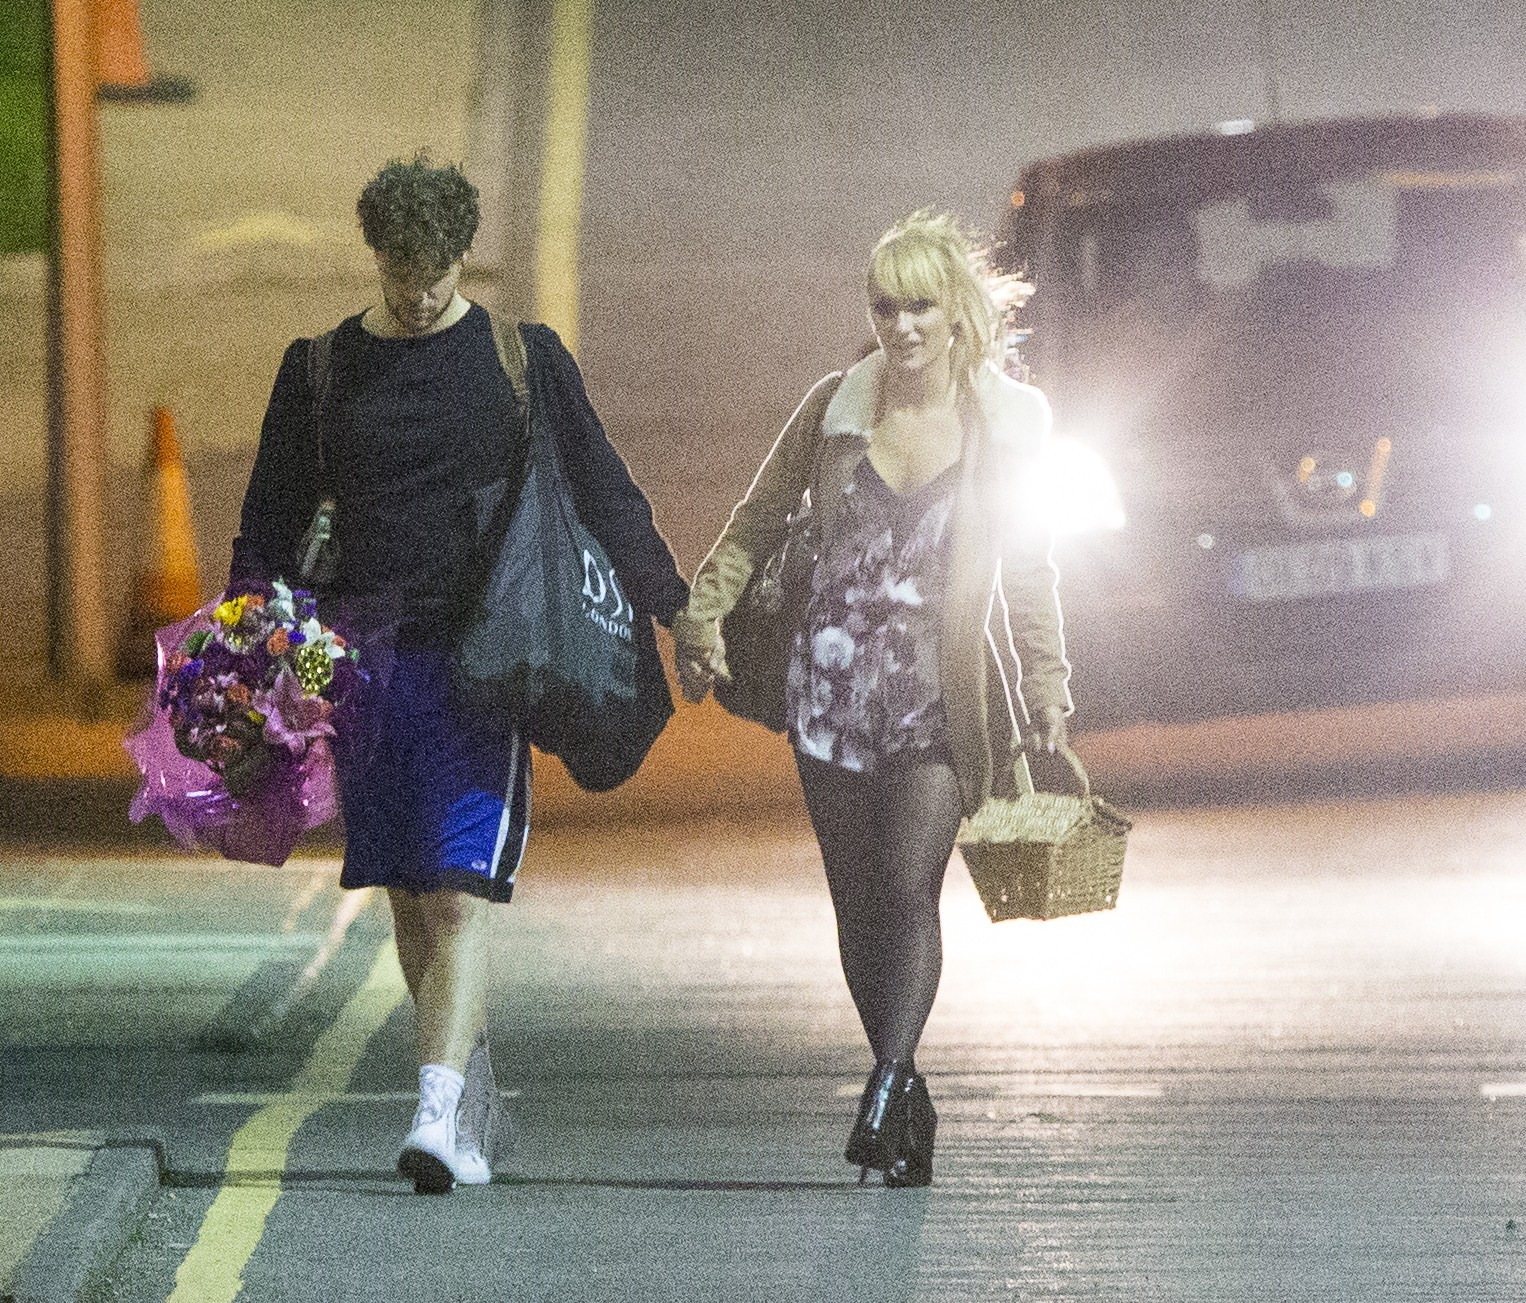 December 20, 2015 **exc - to be joined with iso images - ** Jay McGuiness and Aliona Vilani seen getting cosy at the 'Strictly Come Dancing' wrap party in Elstree, Hertfordshire. The pair were seen alone getting very close, neither knew if there was anybody watching and the road was empty as they embraced! Exclusive WORLDWIDE RIGHTS Pictures by : FameFlynet UK © 2015 Tel : +44 (0)20 3551 5049 Email : info@fameflynet.uk.com